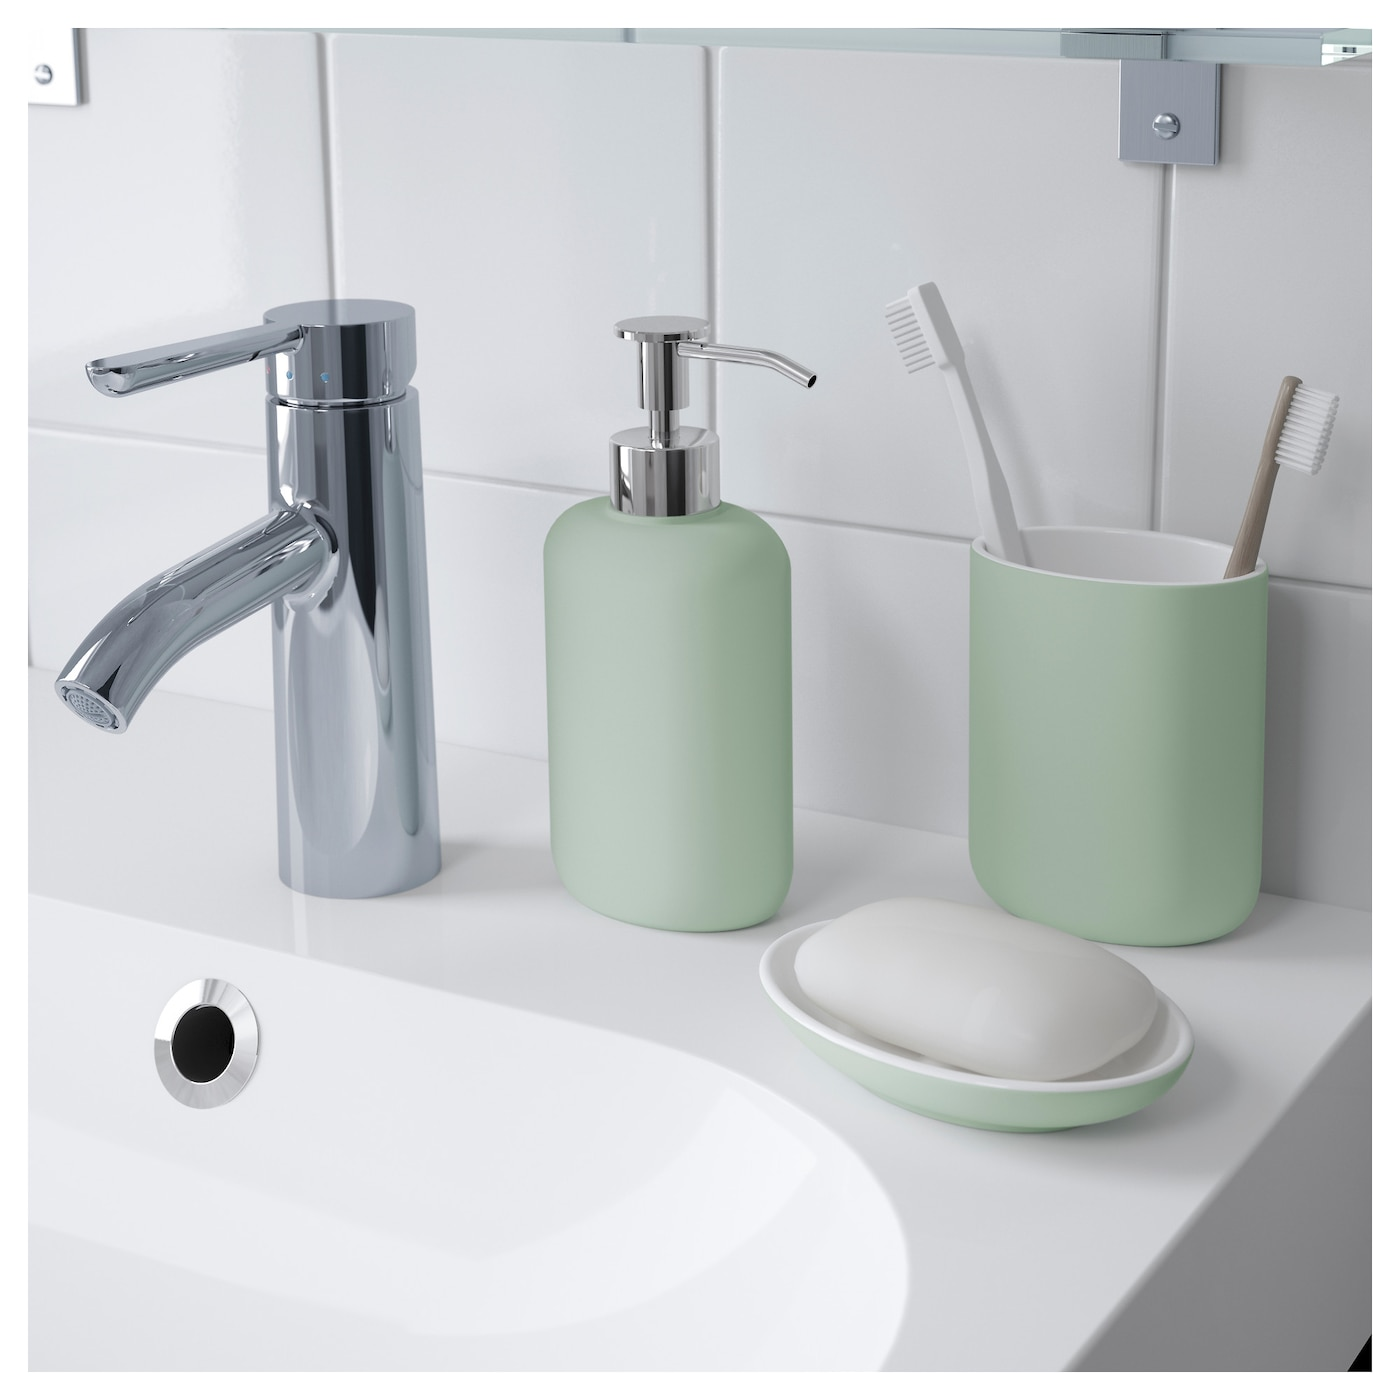 Ekoln soap dispenser light grey green ikea for Green and grey bathroom accessories